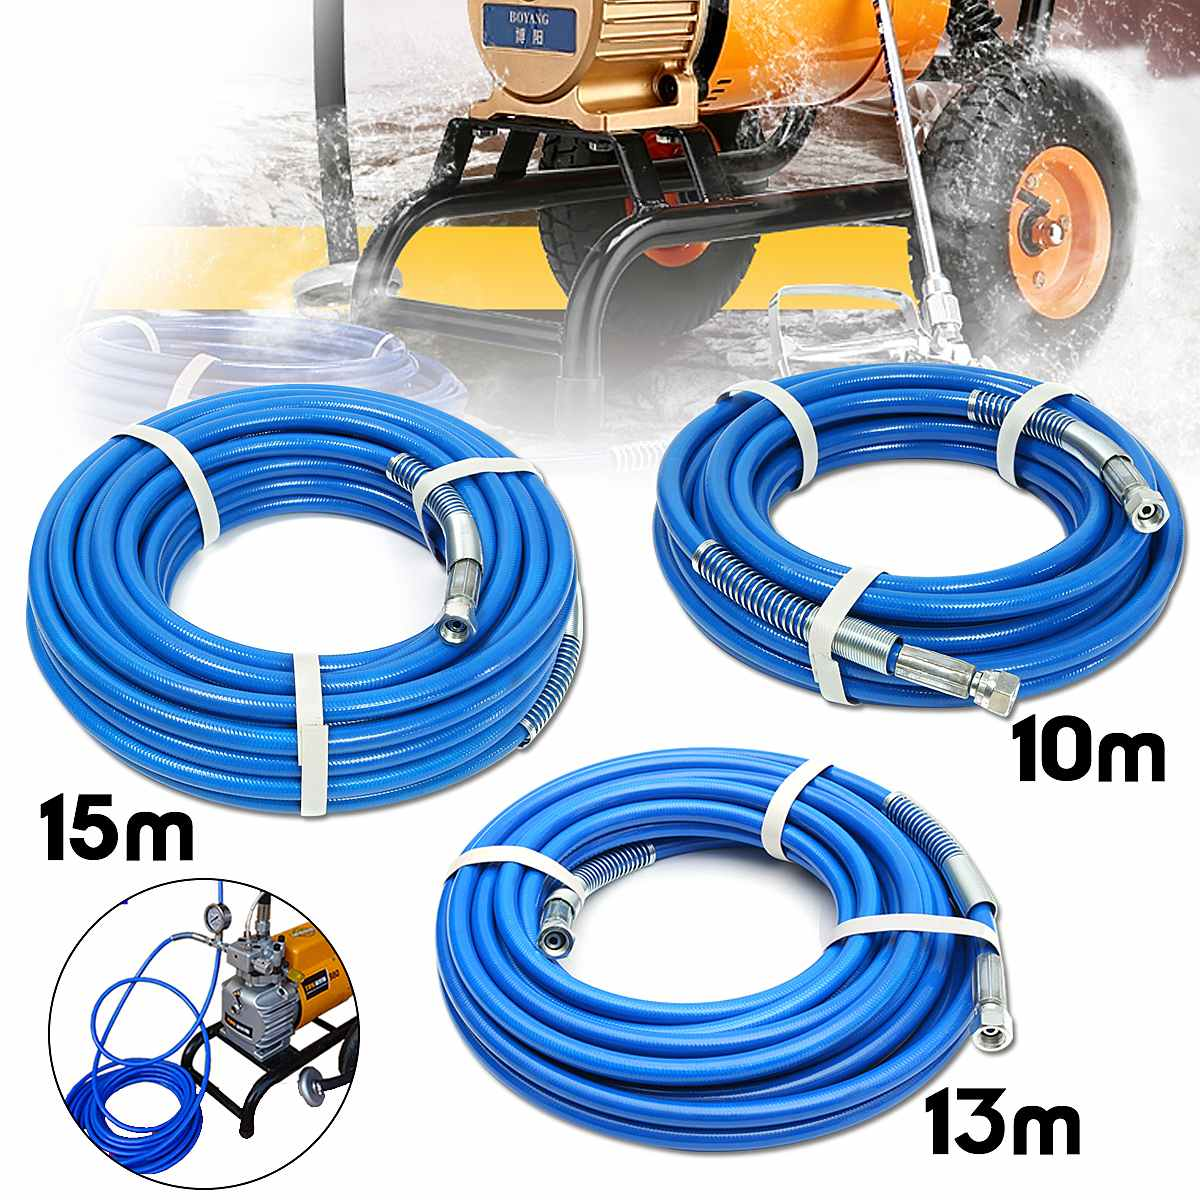 10/13/15m Spray Hose Airless Hose 5000PSI High Pressure Pipe Airless Sprayer Airless Paint Hose For Sprayer Gun Sprayer Water